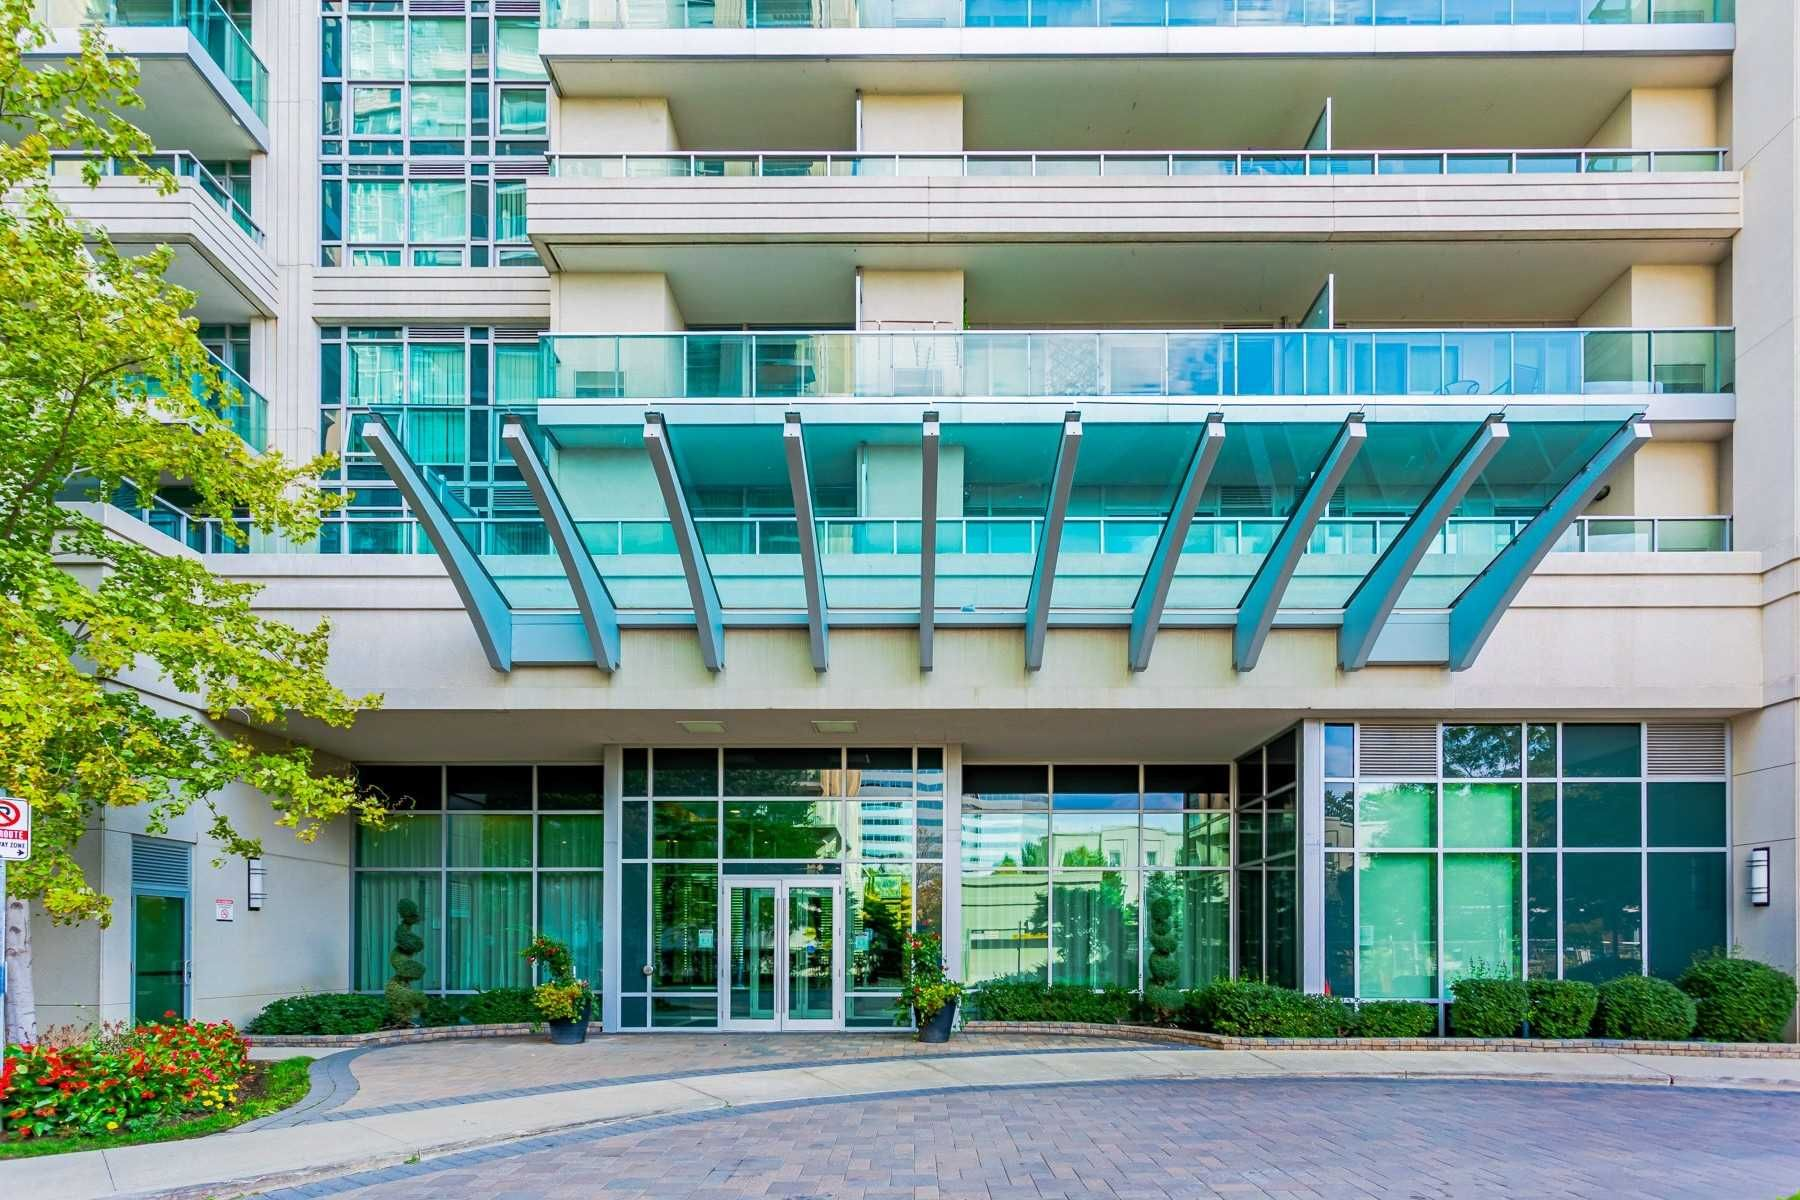 17 Anndale Dr, unit 1908 for sale in Willowdale - image #2